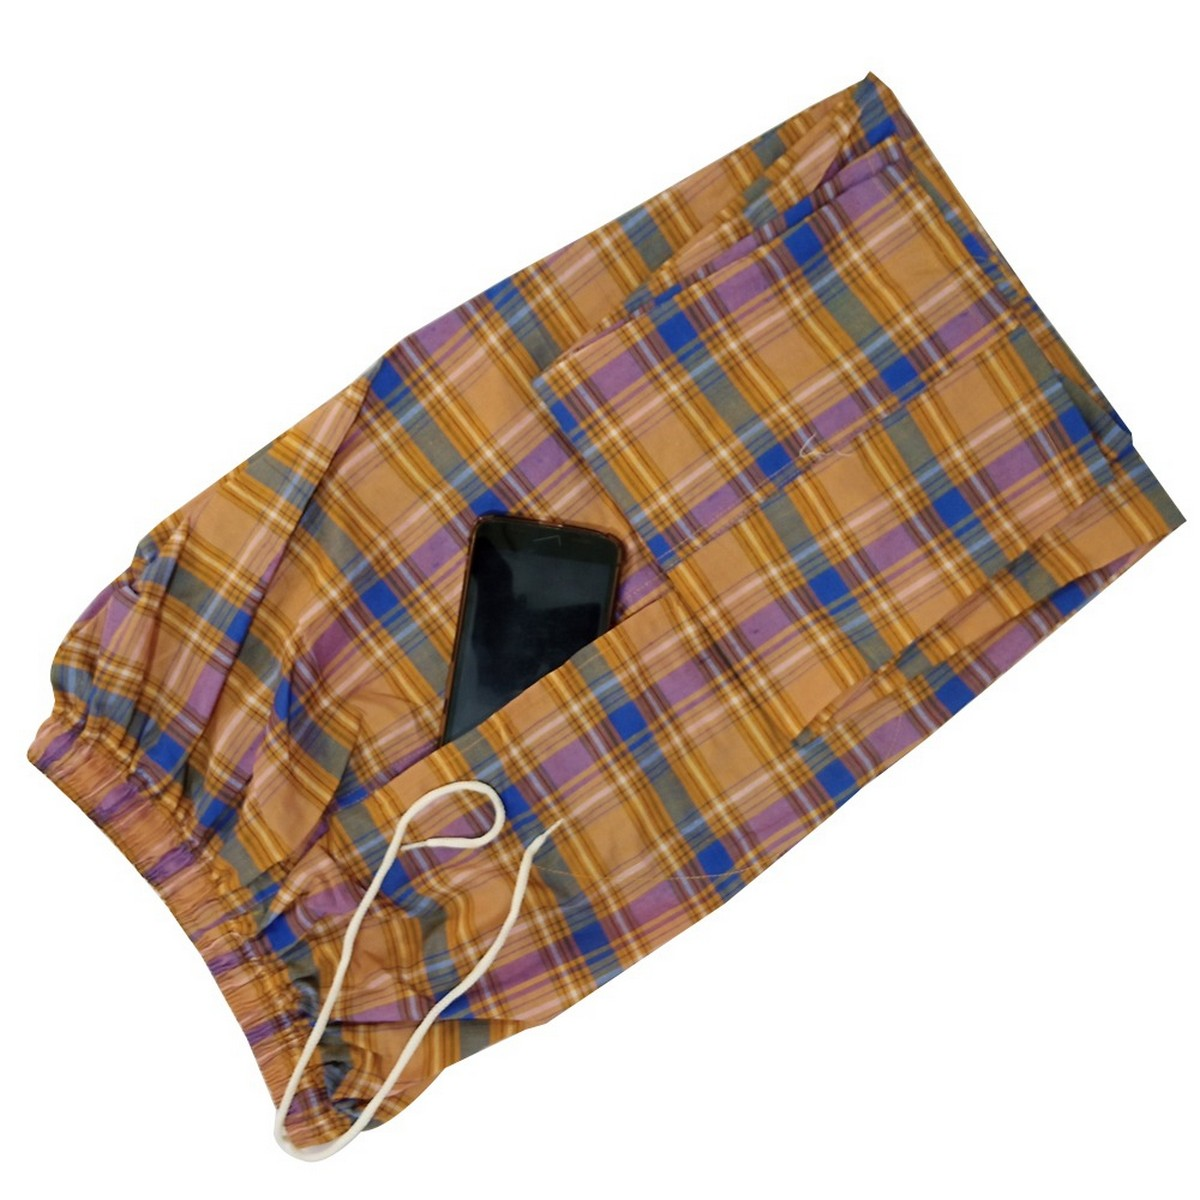 Check Trouser with Pocket Checks Design Trousers Pajama For Men's - 1 Pcs